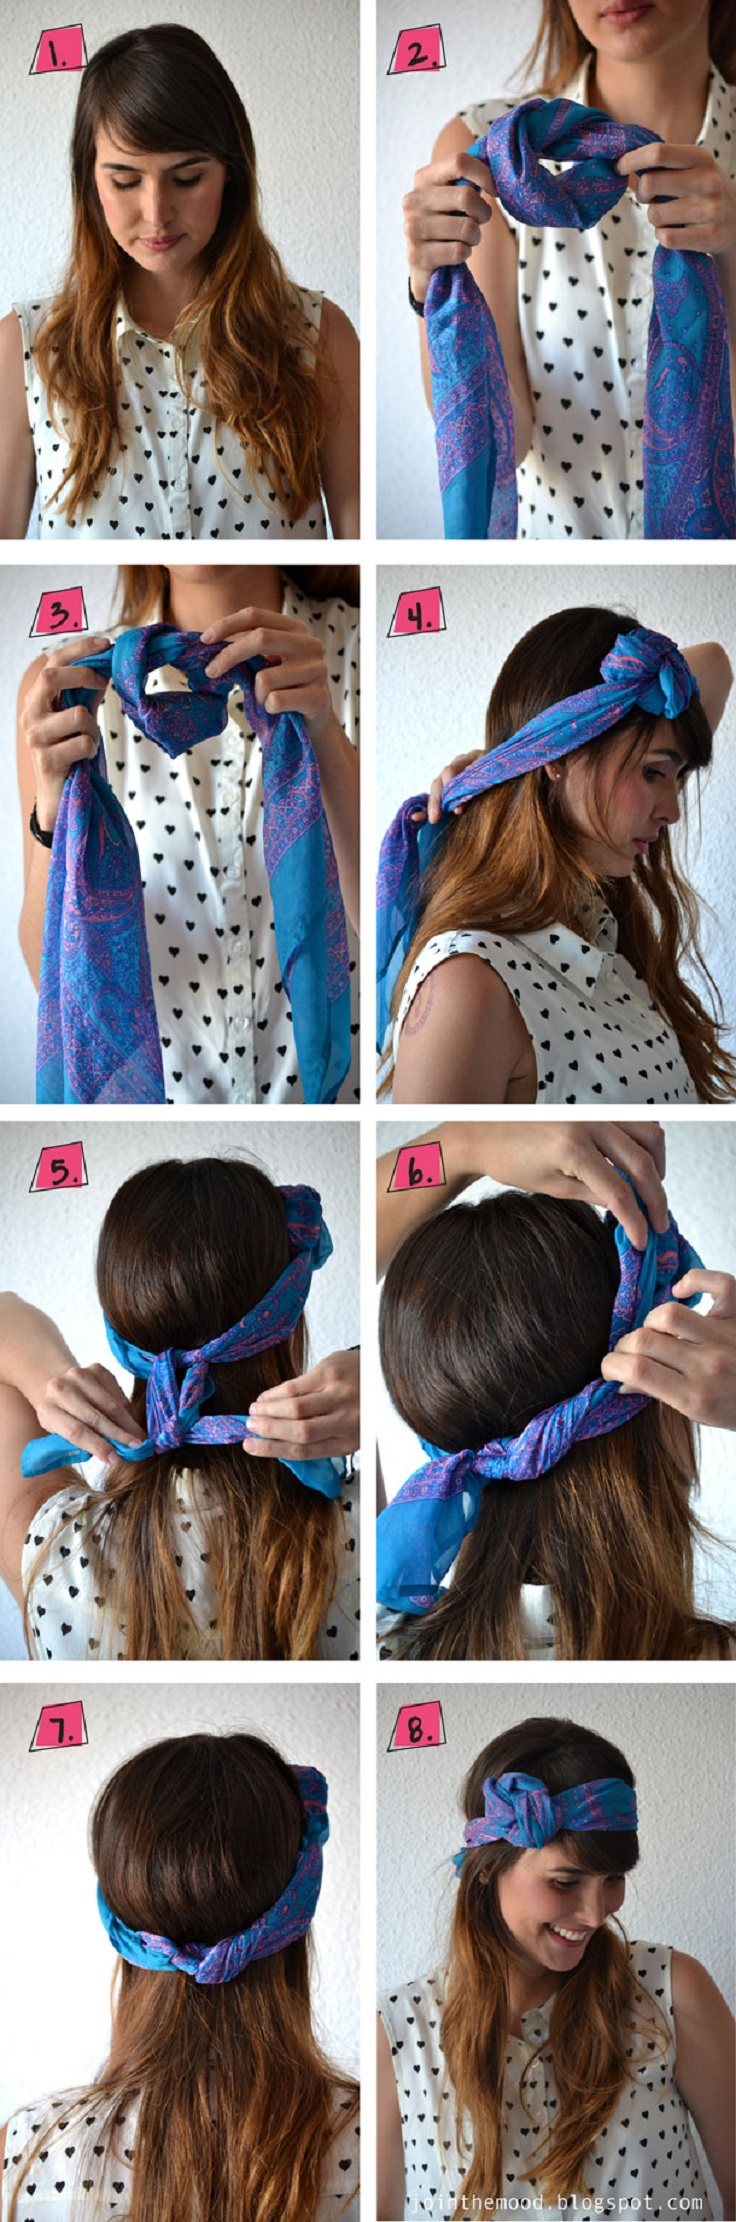 Bandana Hairstyles Top 10 Simple Ways Tutorials Top